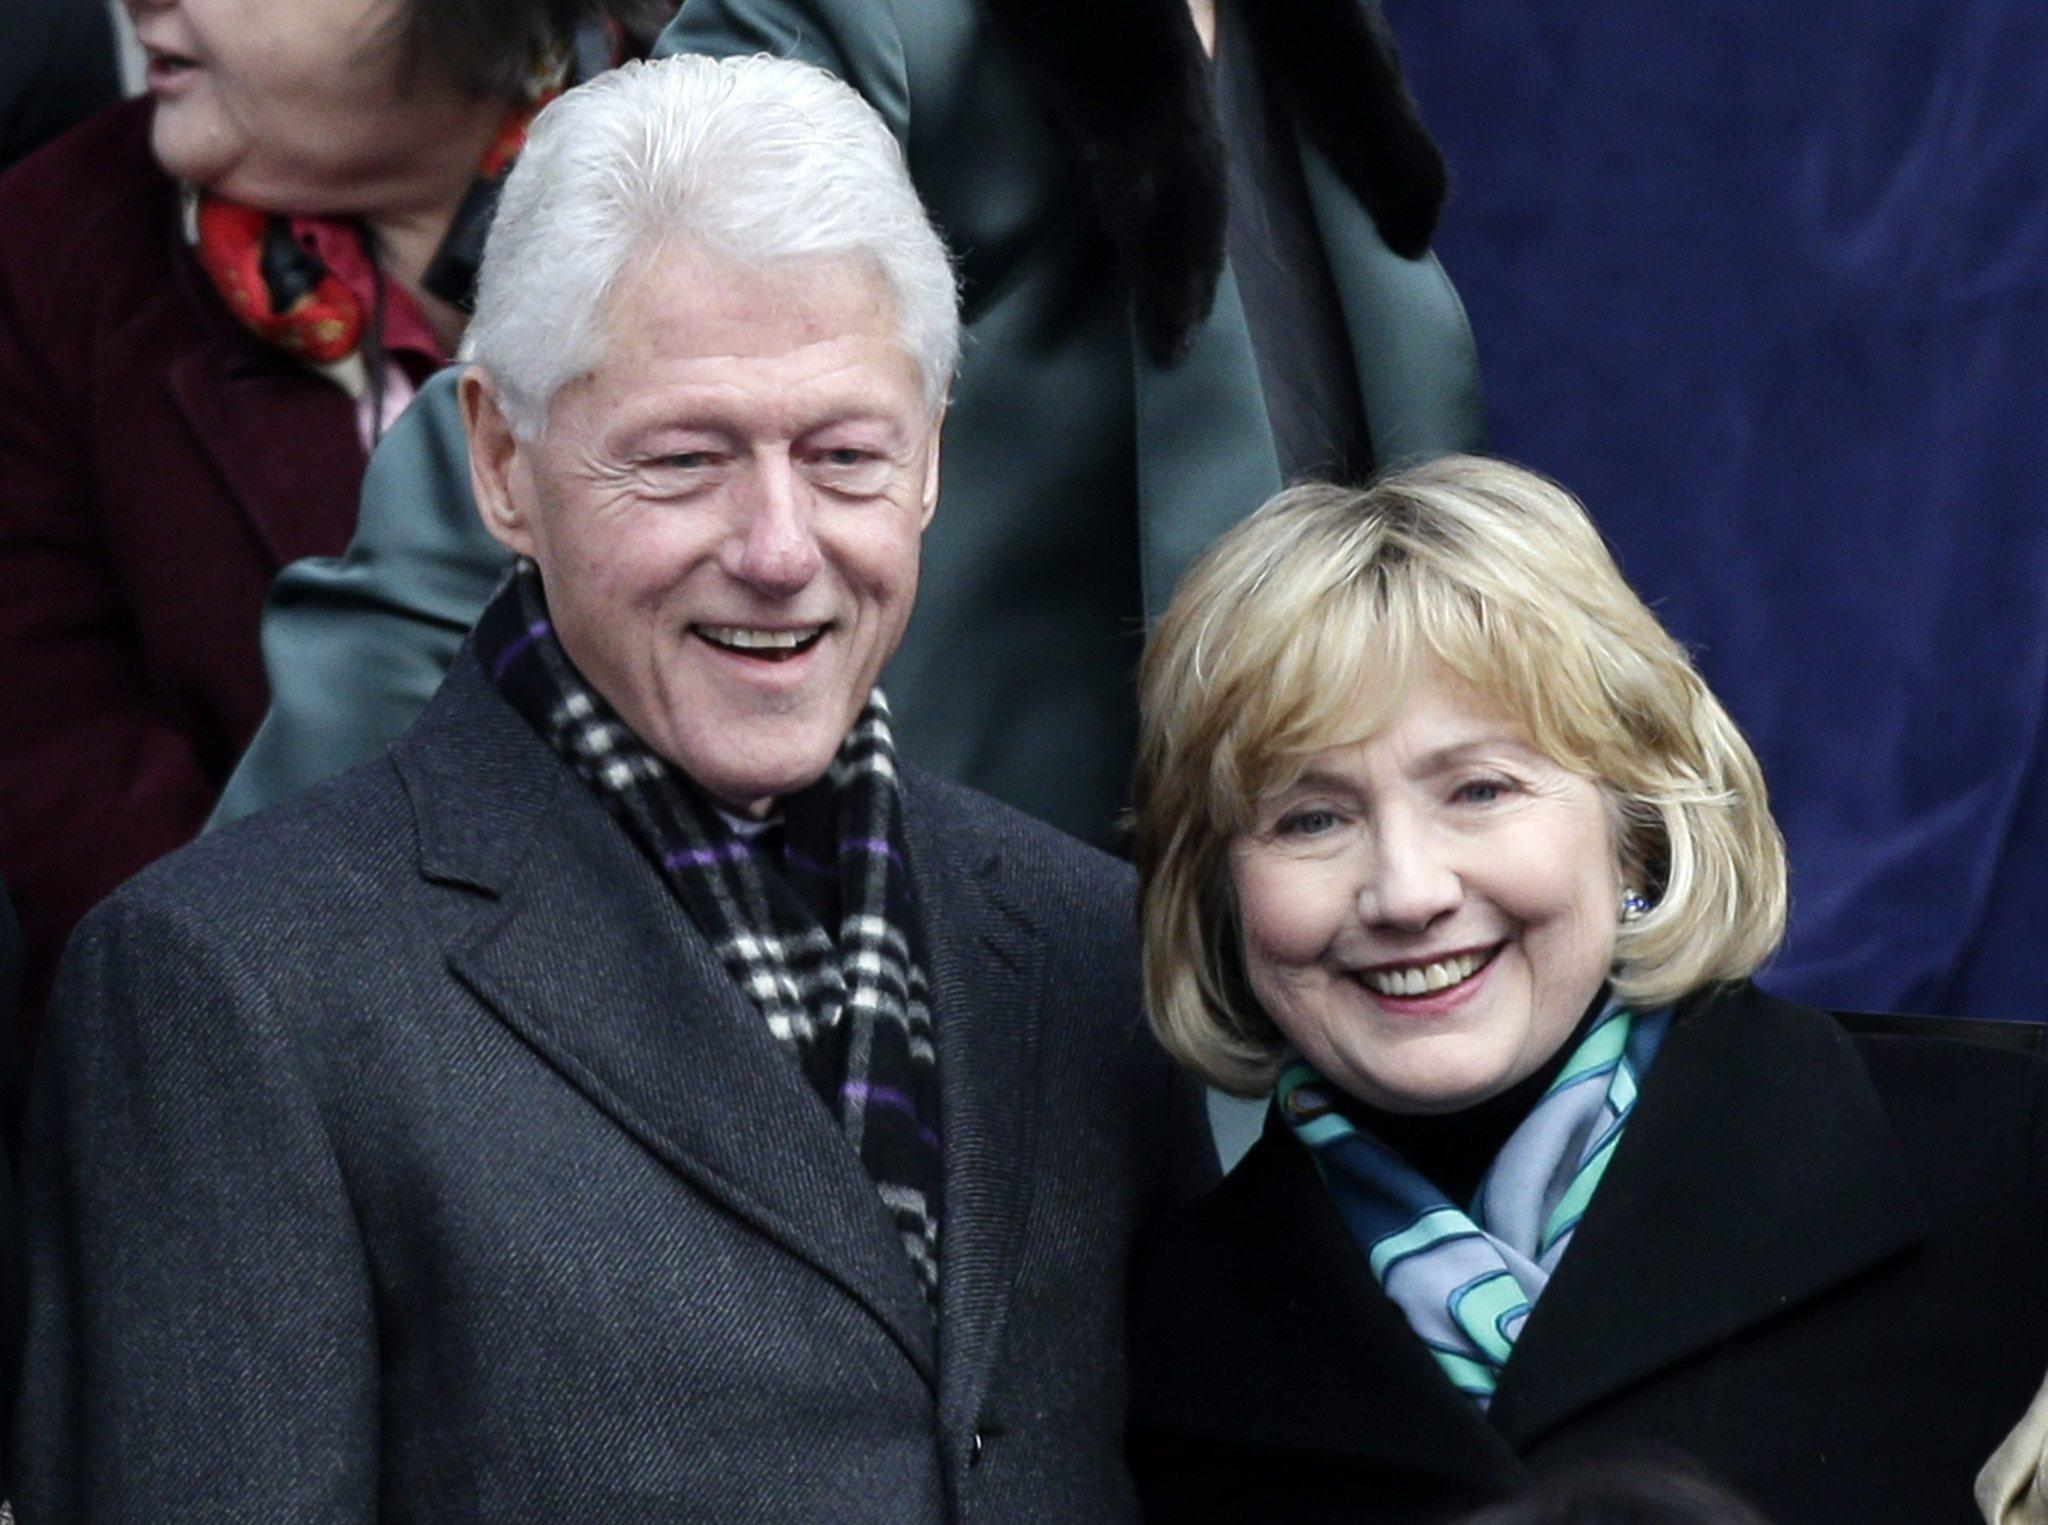 Bill and Hillary Rodham Clinton in January at the swearing-in of New York Mayor Bill de Blasio. Newly released Clinton White House documents may signal conflict ahead as Hillary Clinton considers her own presidential run.